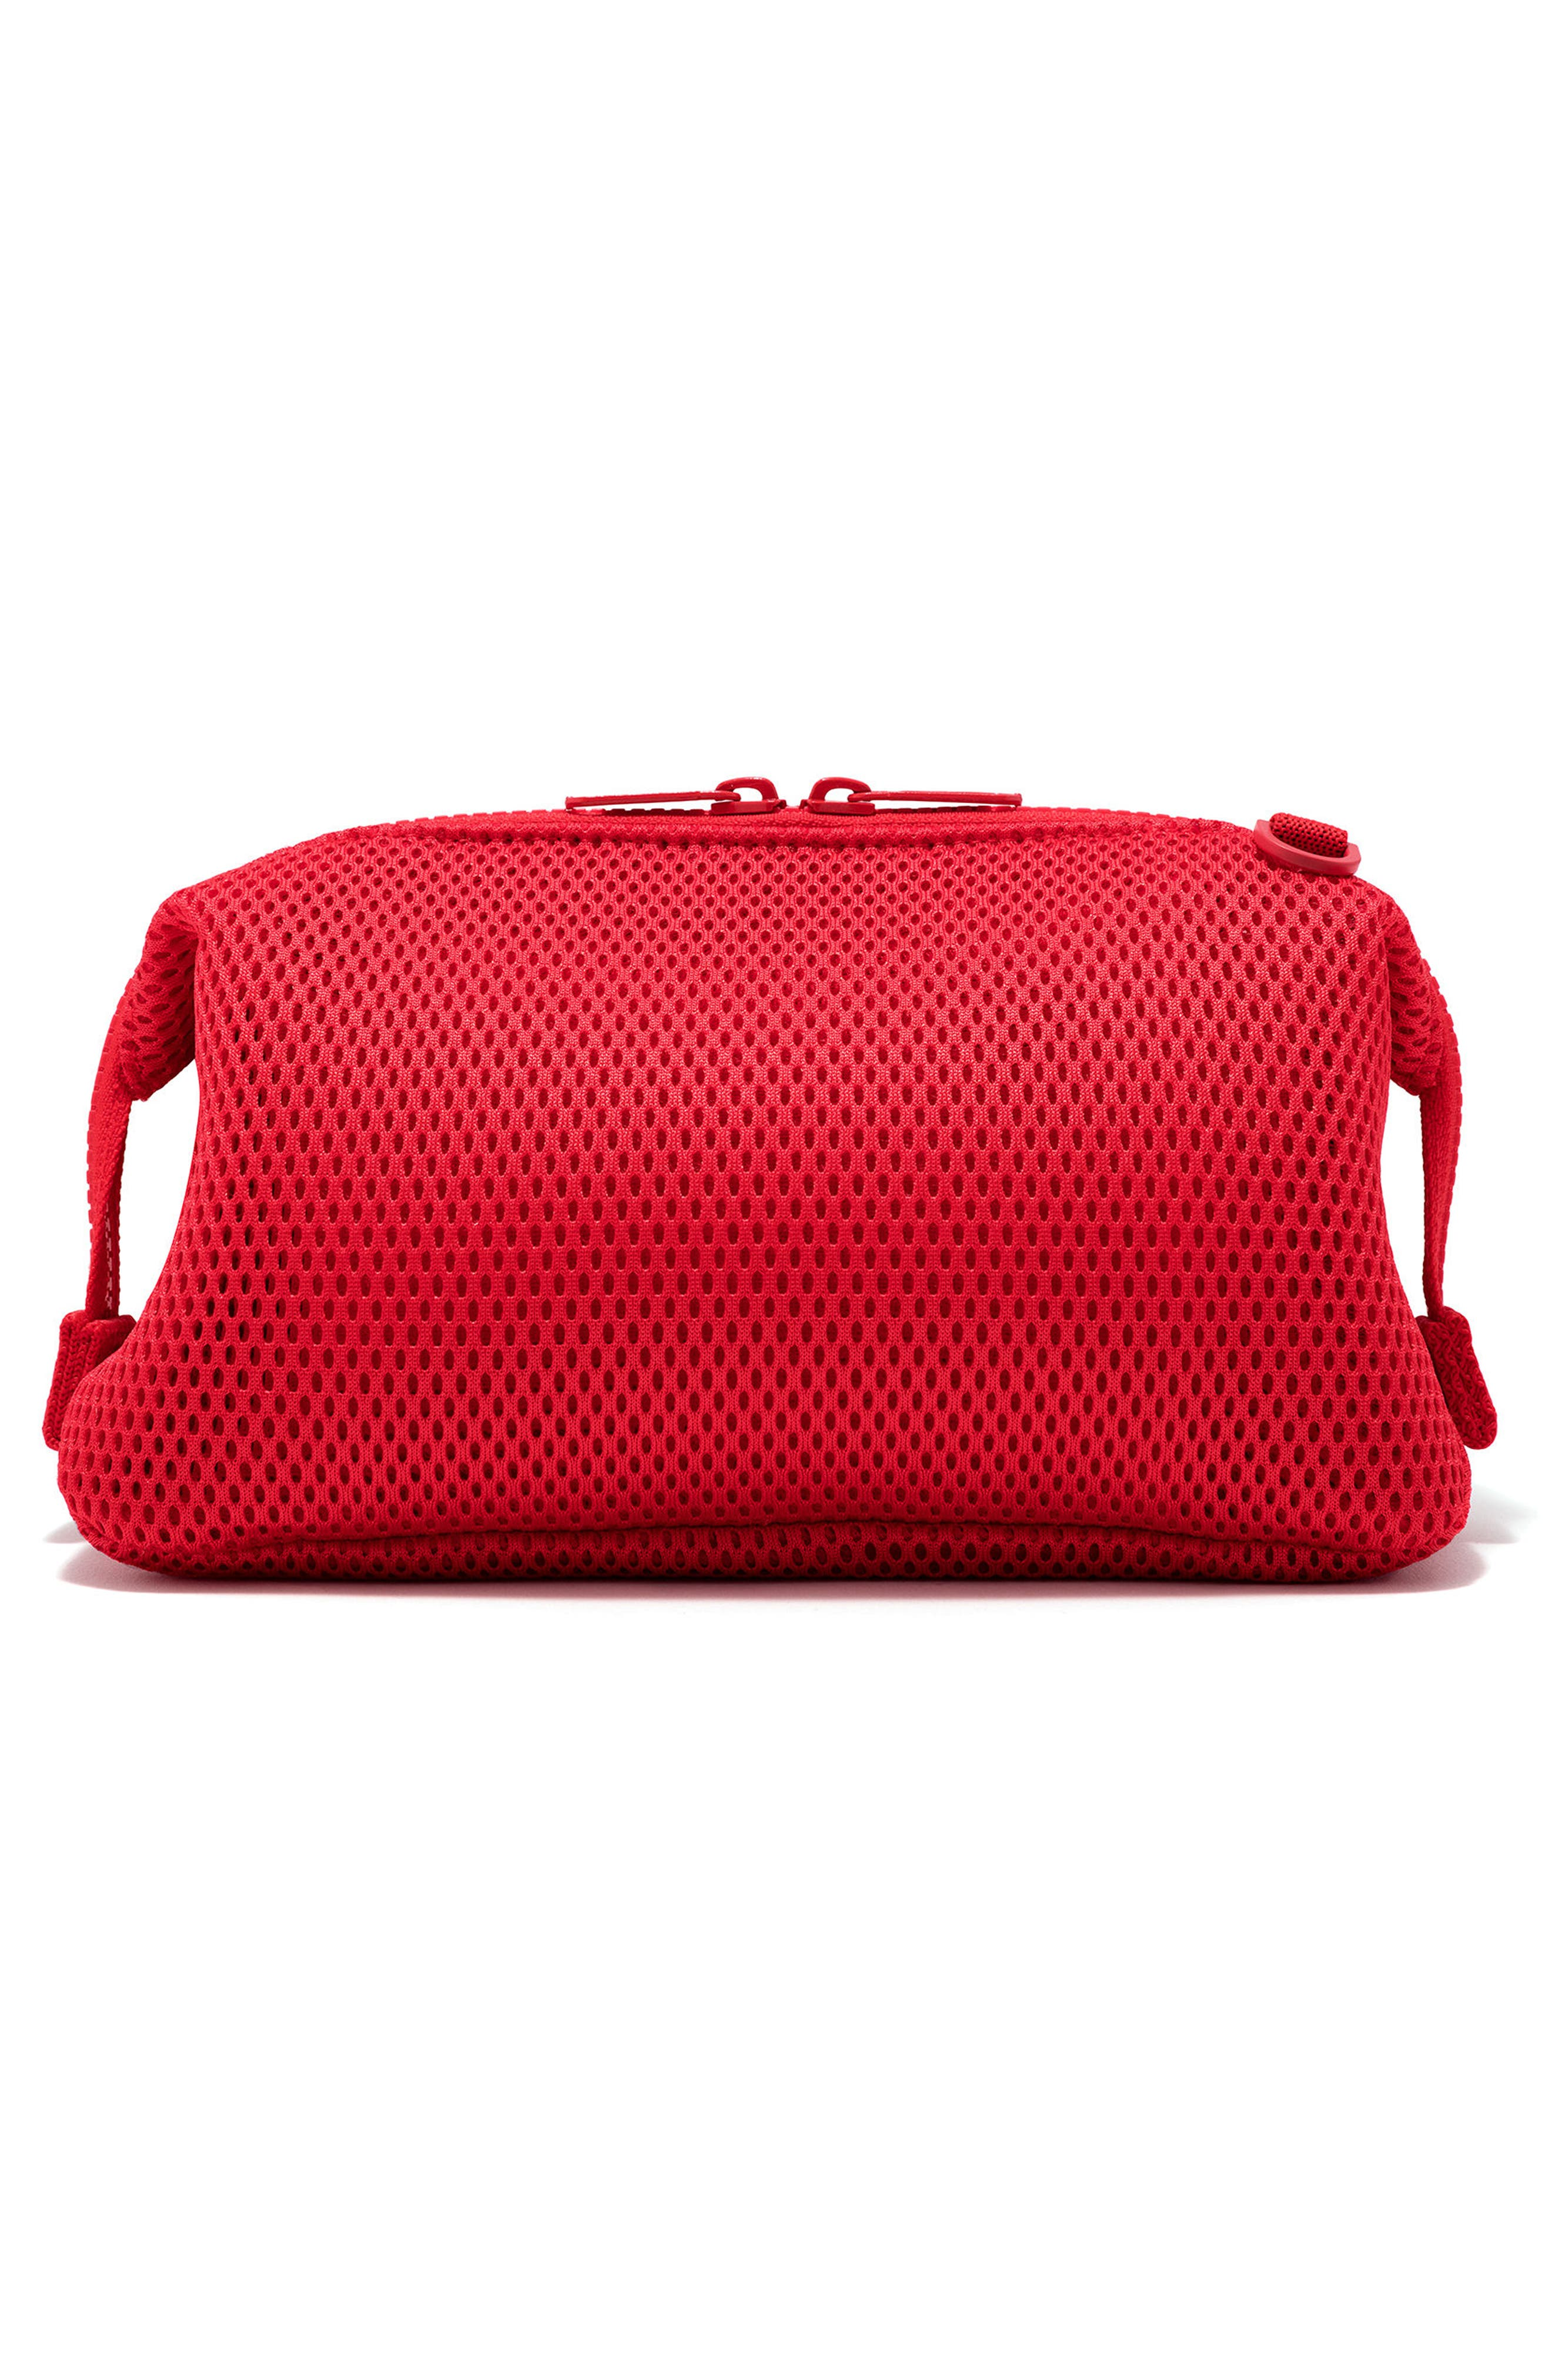 Large Hunter Neoprene Toiletry Bag,                             Alternate thumbnail 3, color,                             Poppy Air Mesh